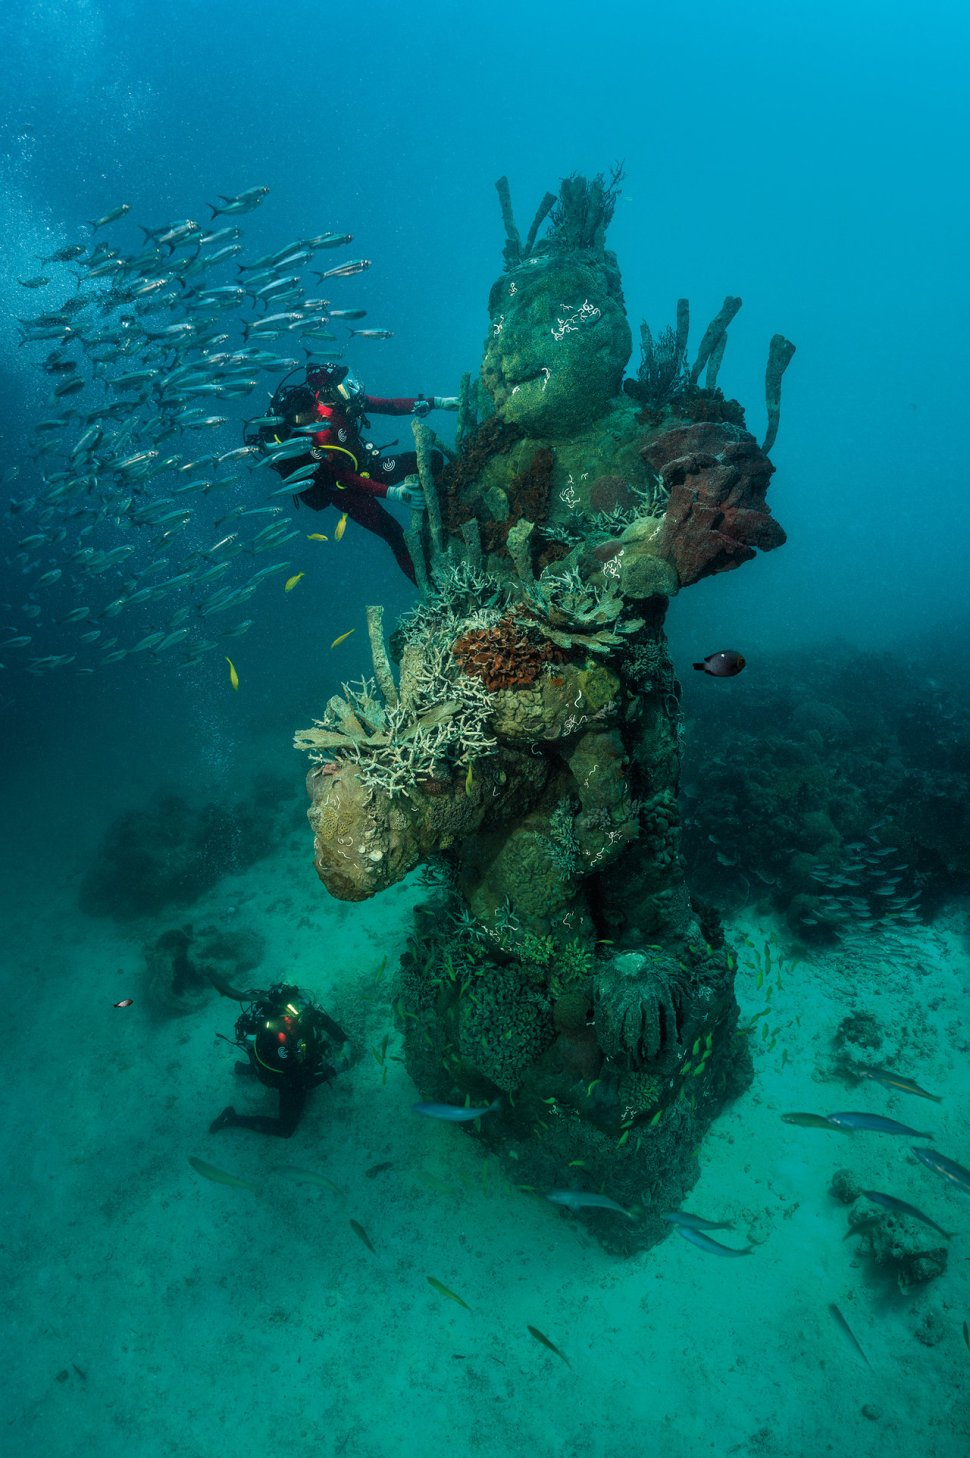 Treasure of the wreck of the unbelievable 2017 Foto Christoph Gerigk ©Damien Hirst and Science Ltd.